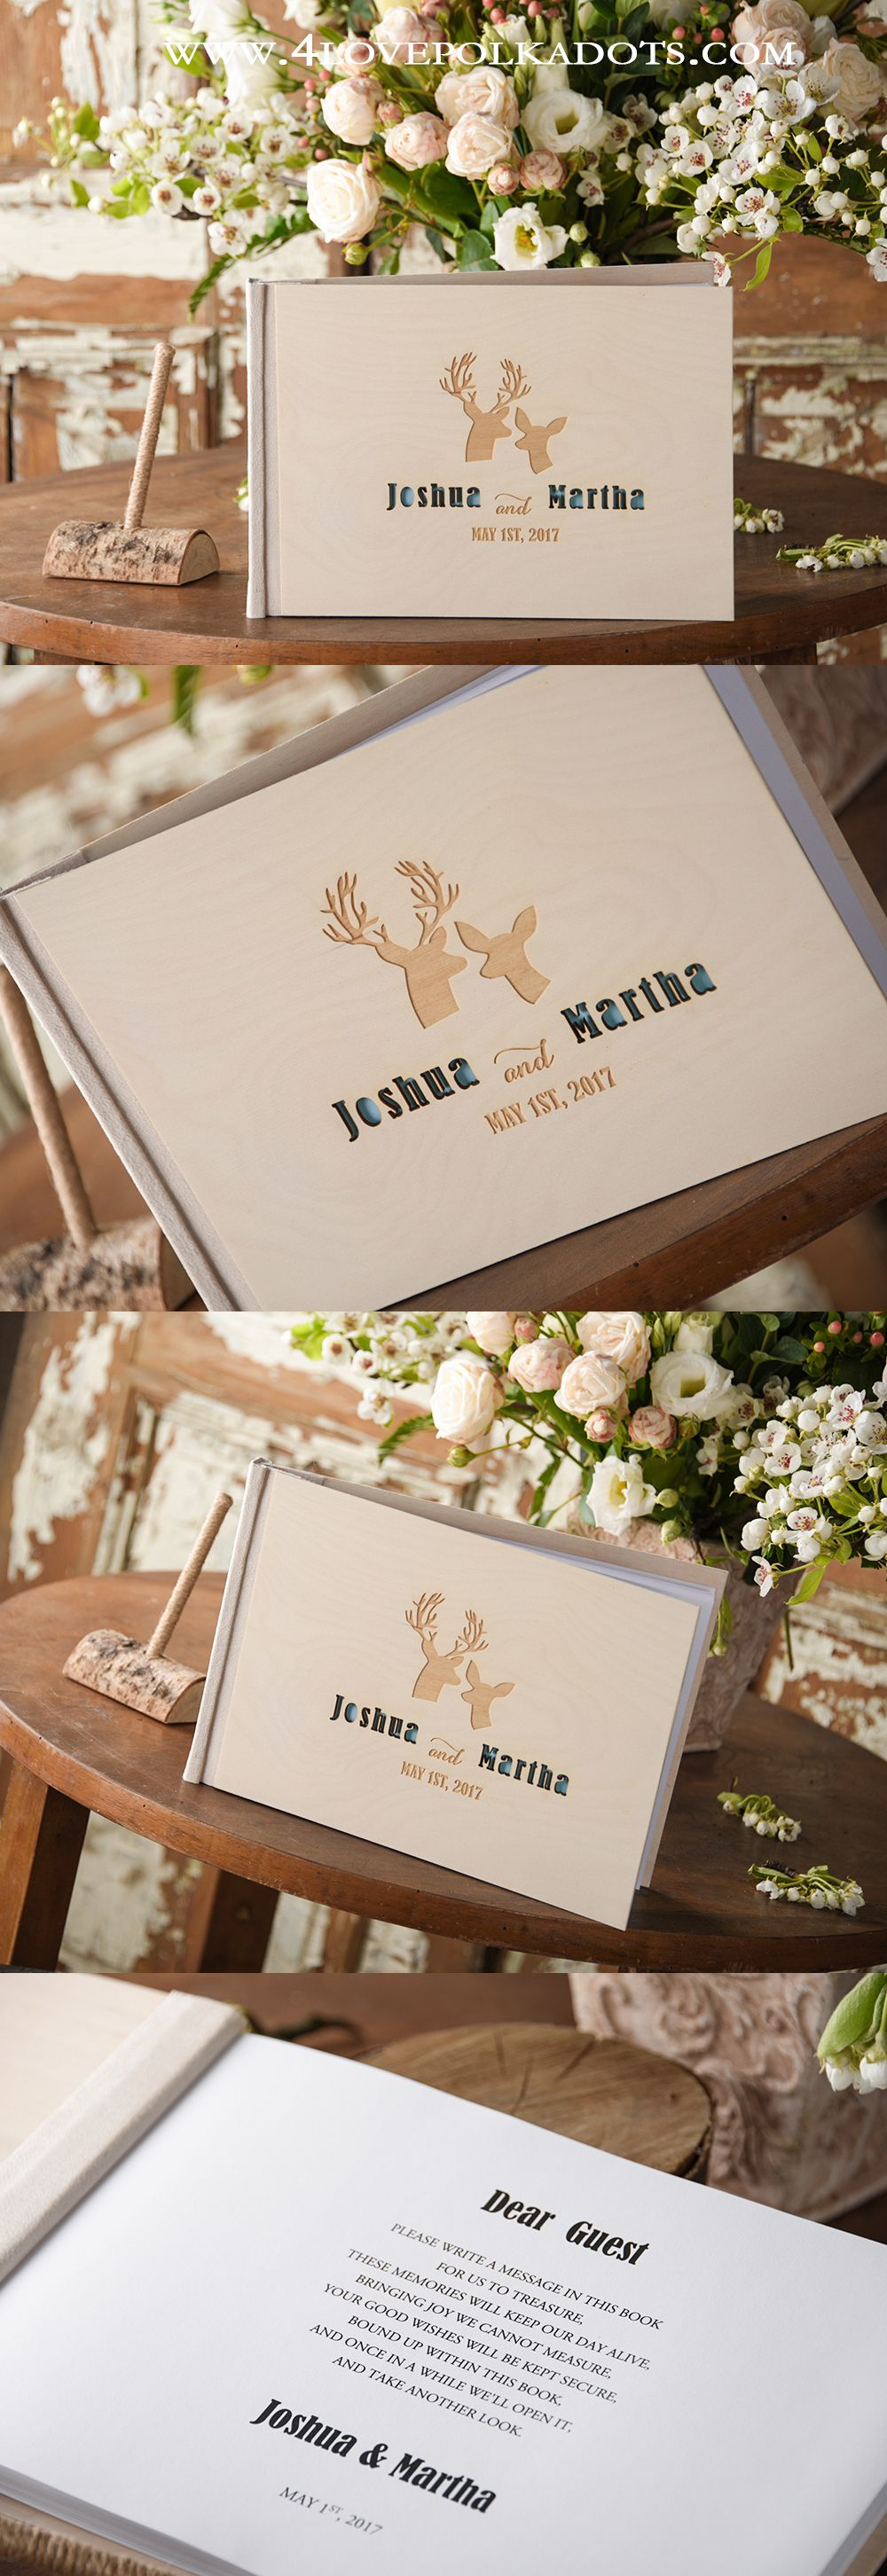 Boho Wedding Guest Book Deers in Love #weddingguestbook | Faire part ...